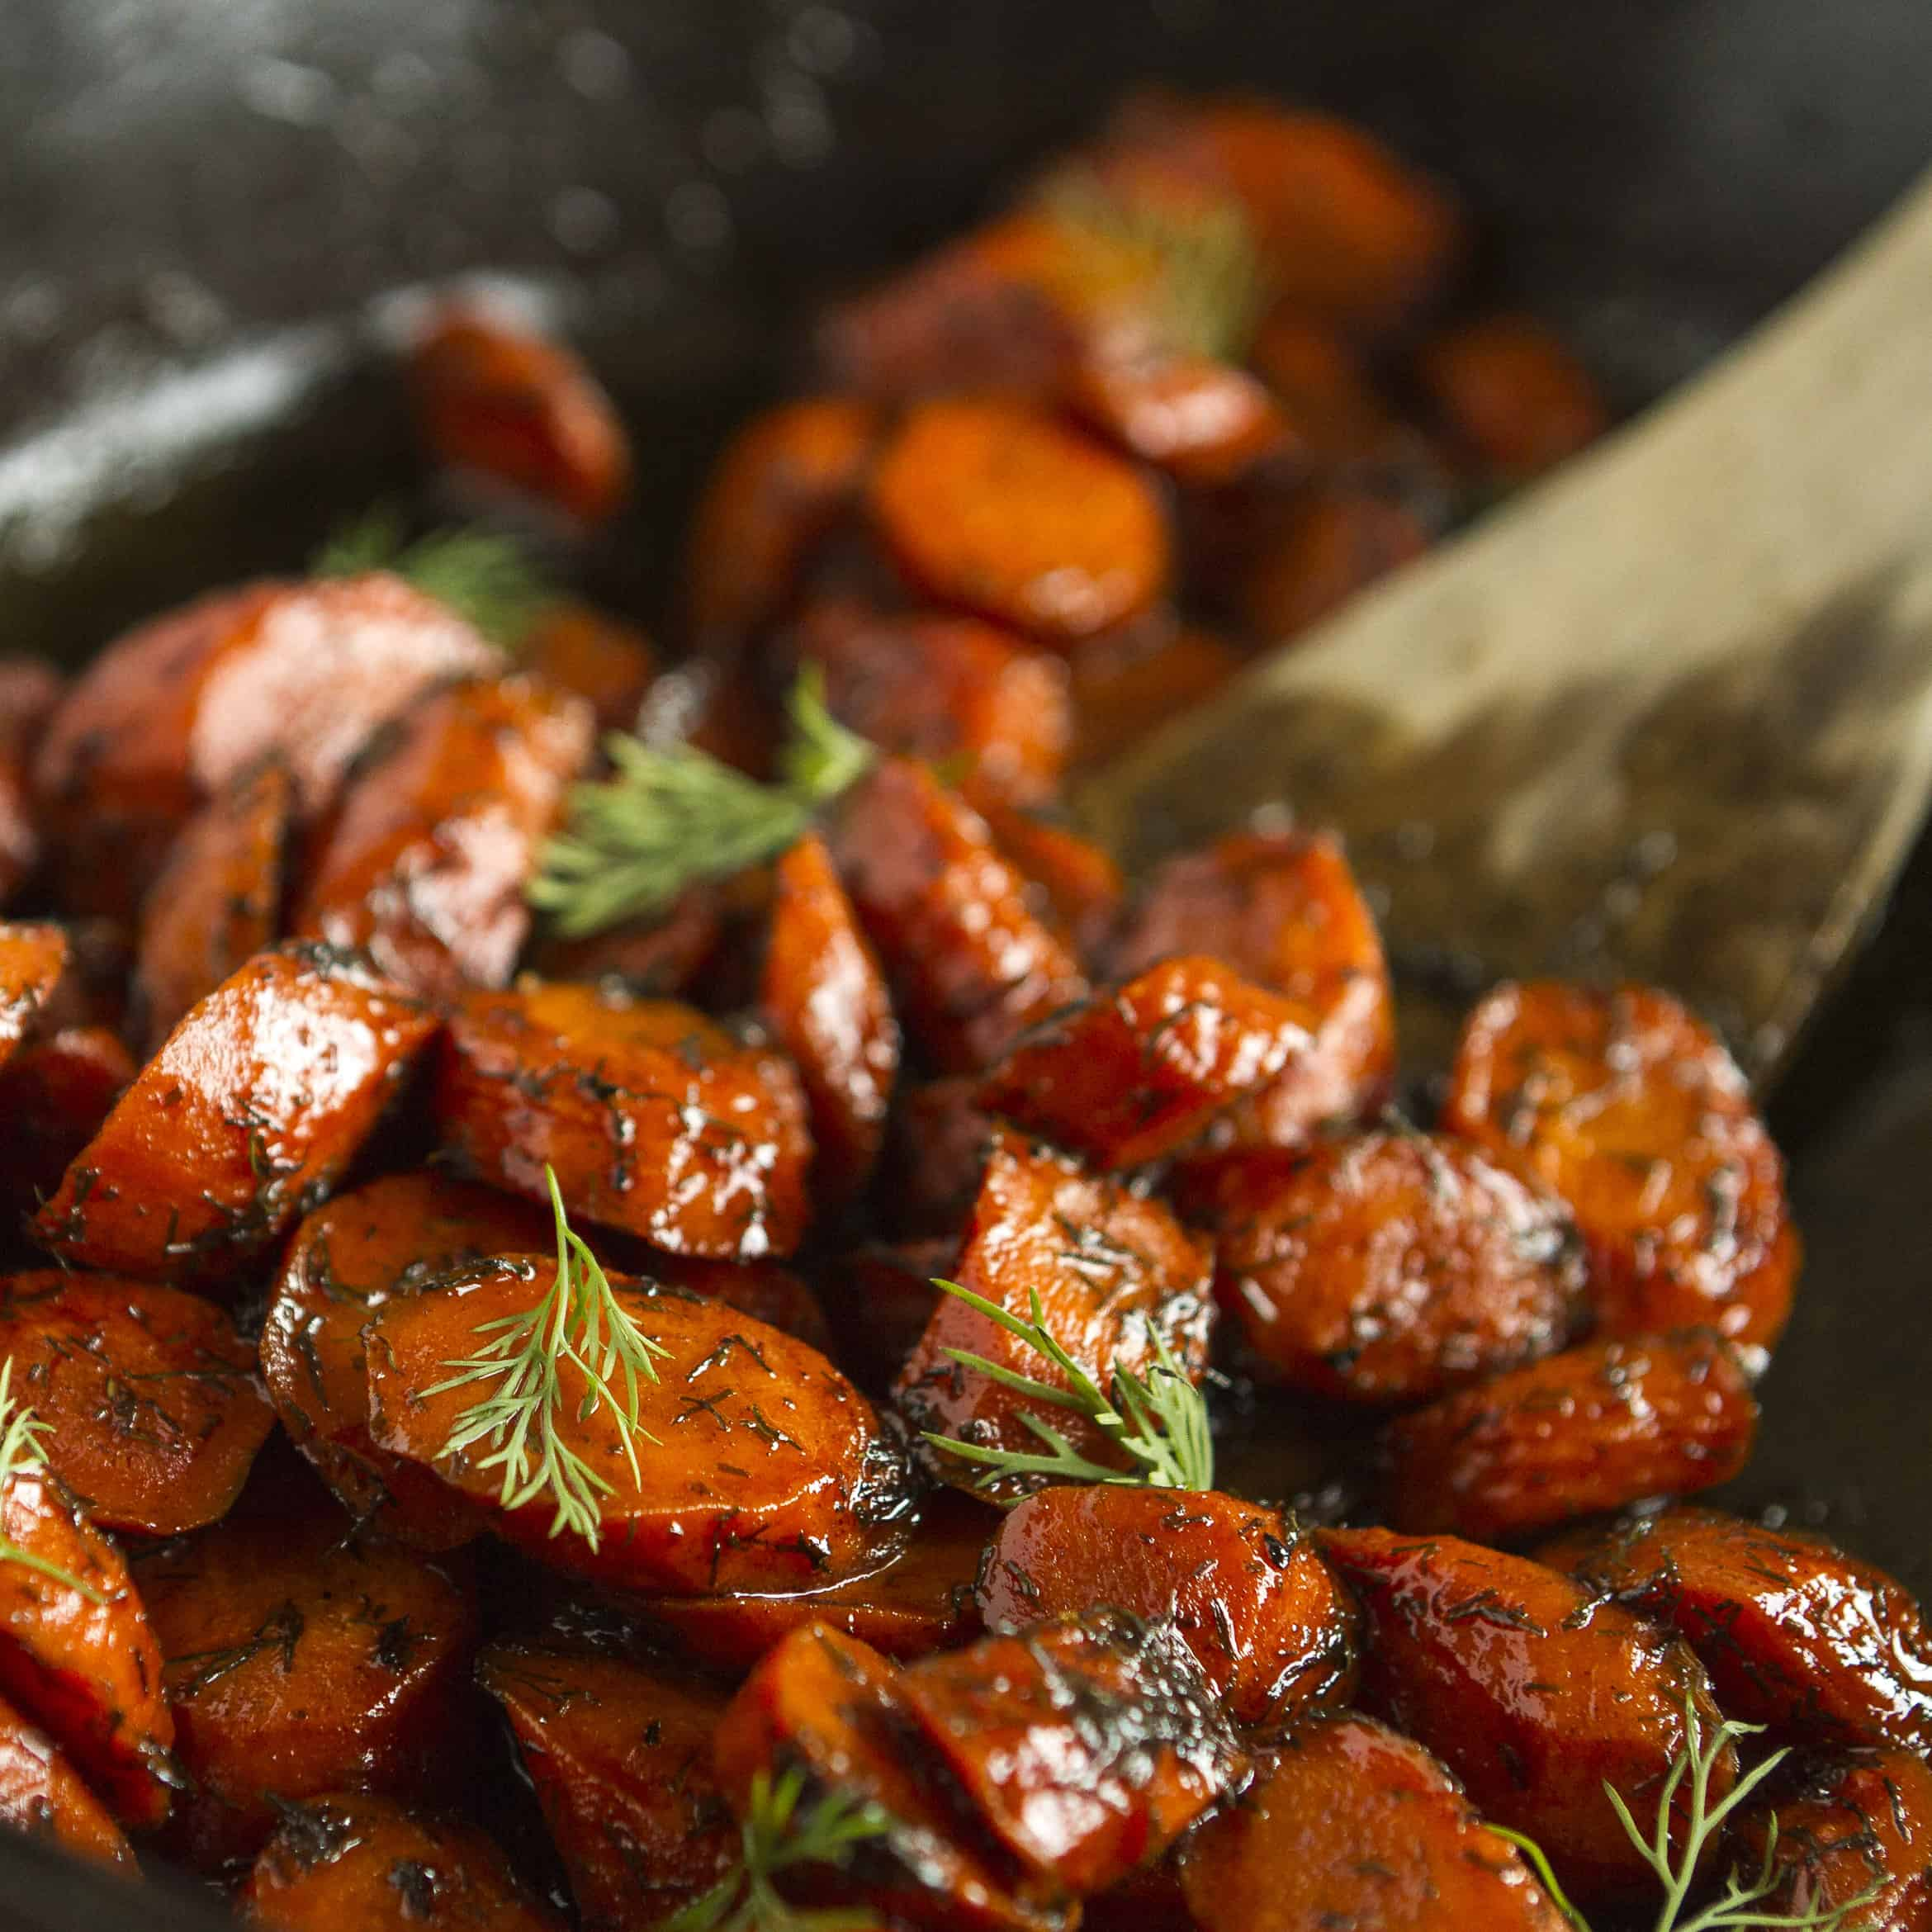 Roasted Carrots -- this roasted carrots recipe is sure to get the whole family to eat their veggies! Just 4 simple ingredients: brown butter, carrots (of course), honey and dried dill. Totally amazing!!!   via @unsophisticook on unsophisticook.com